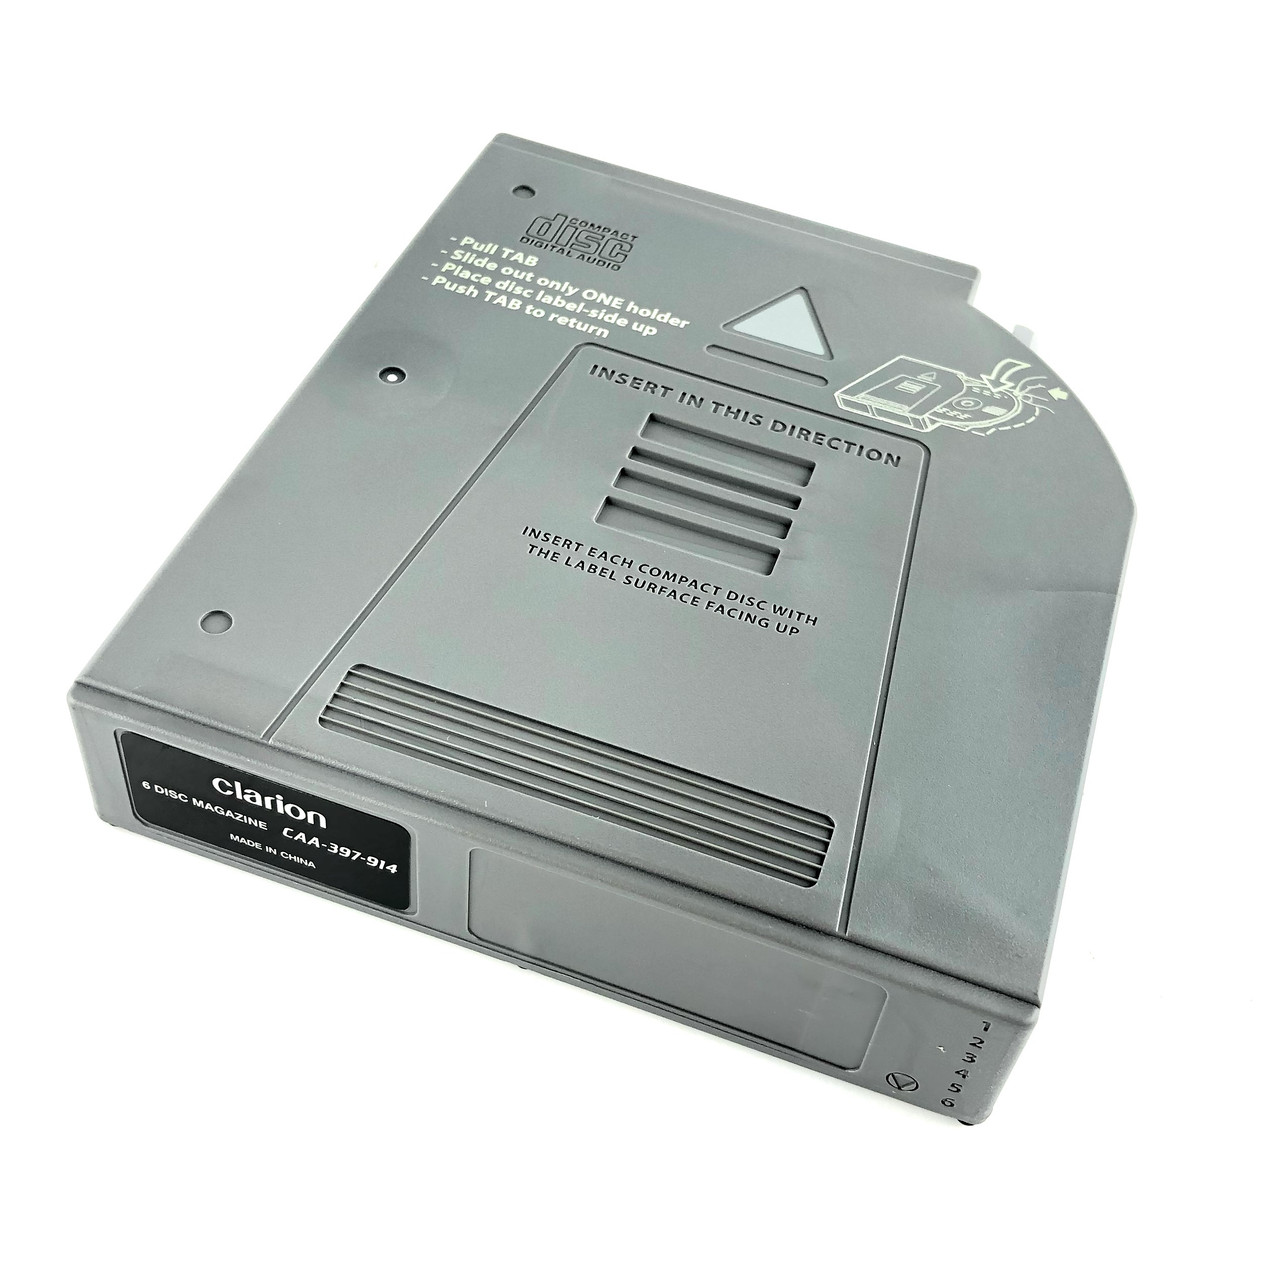 CD Changer Cartridge - LR025951